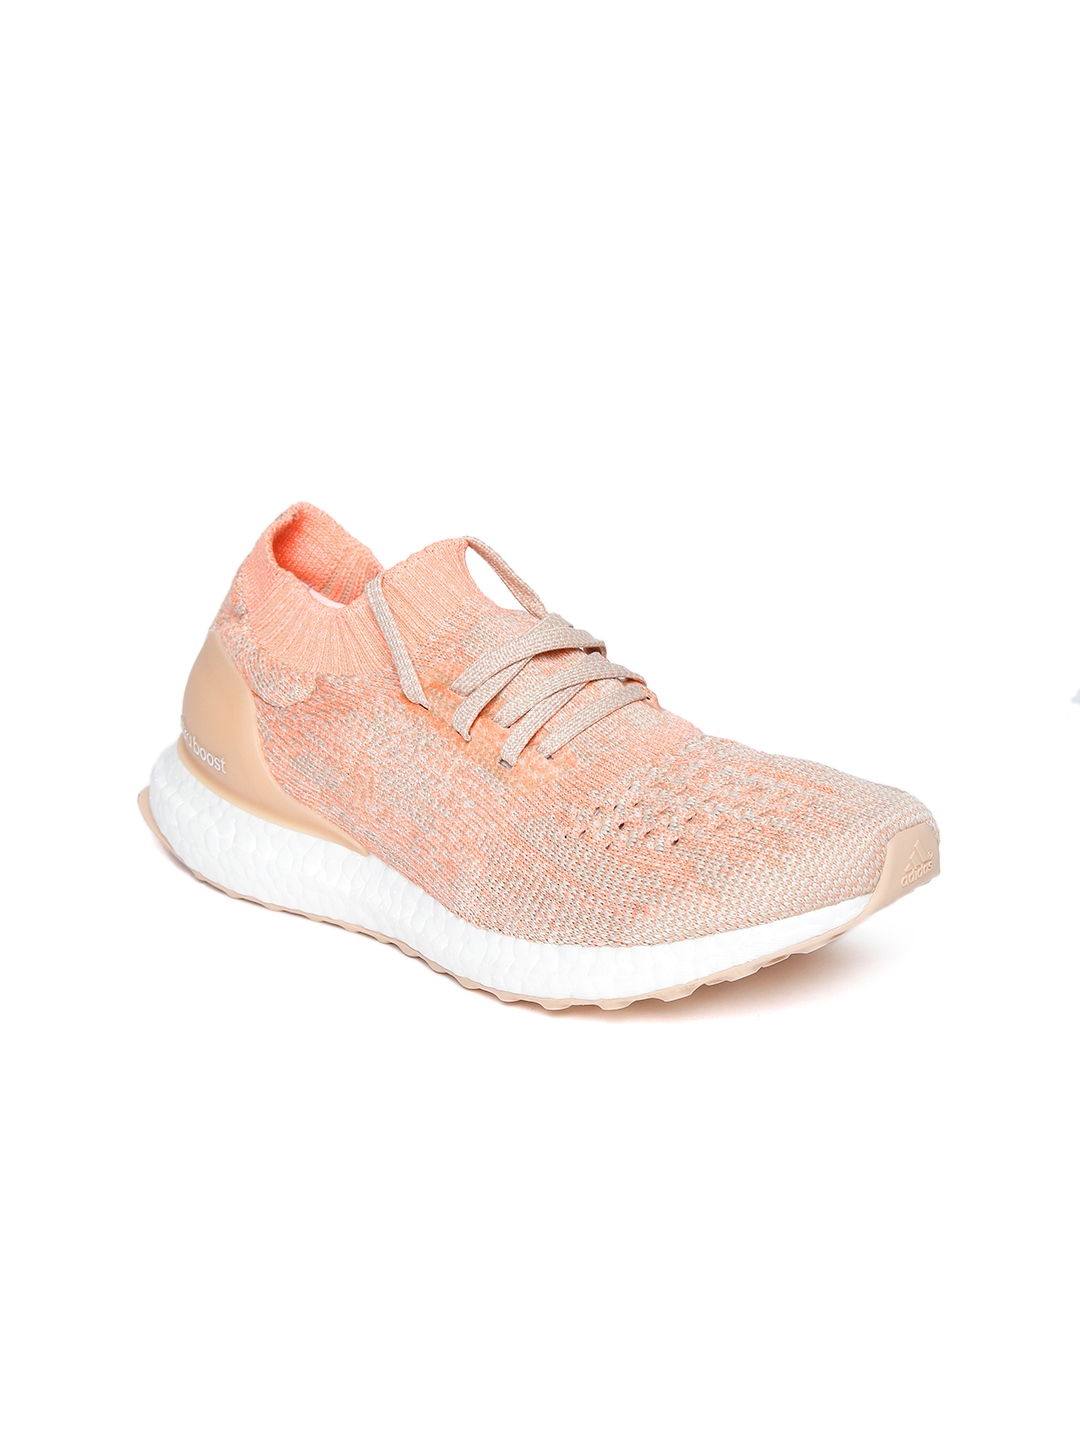 buy popular 96137 e1f6a Buy ADIDAS Women Peach Coloured Ultraboost Uncaged Running ...